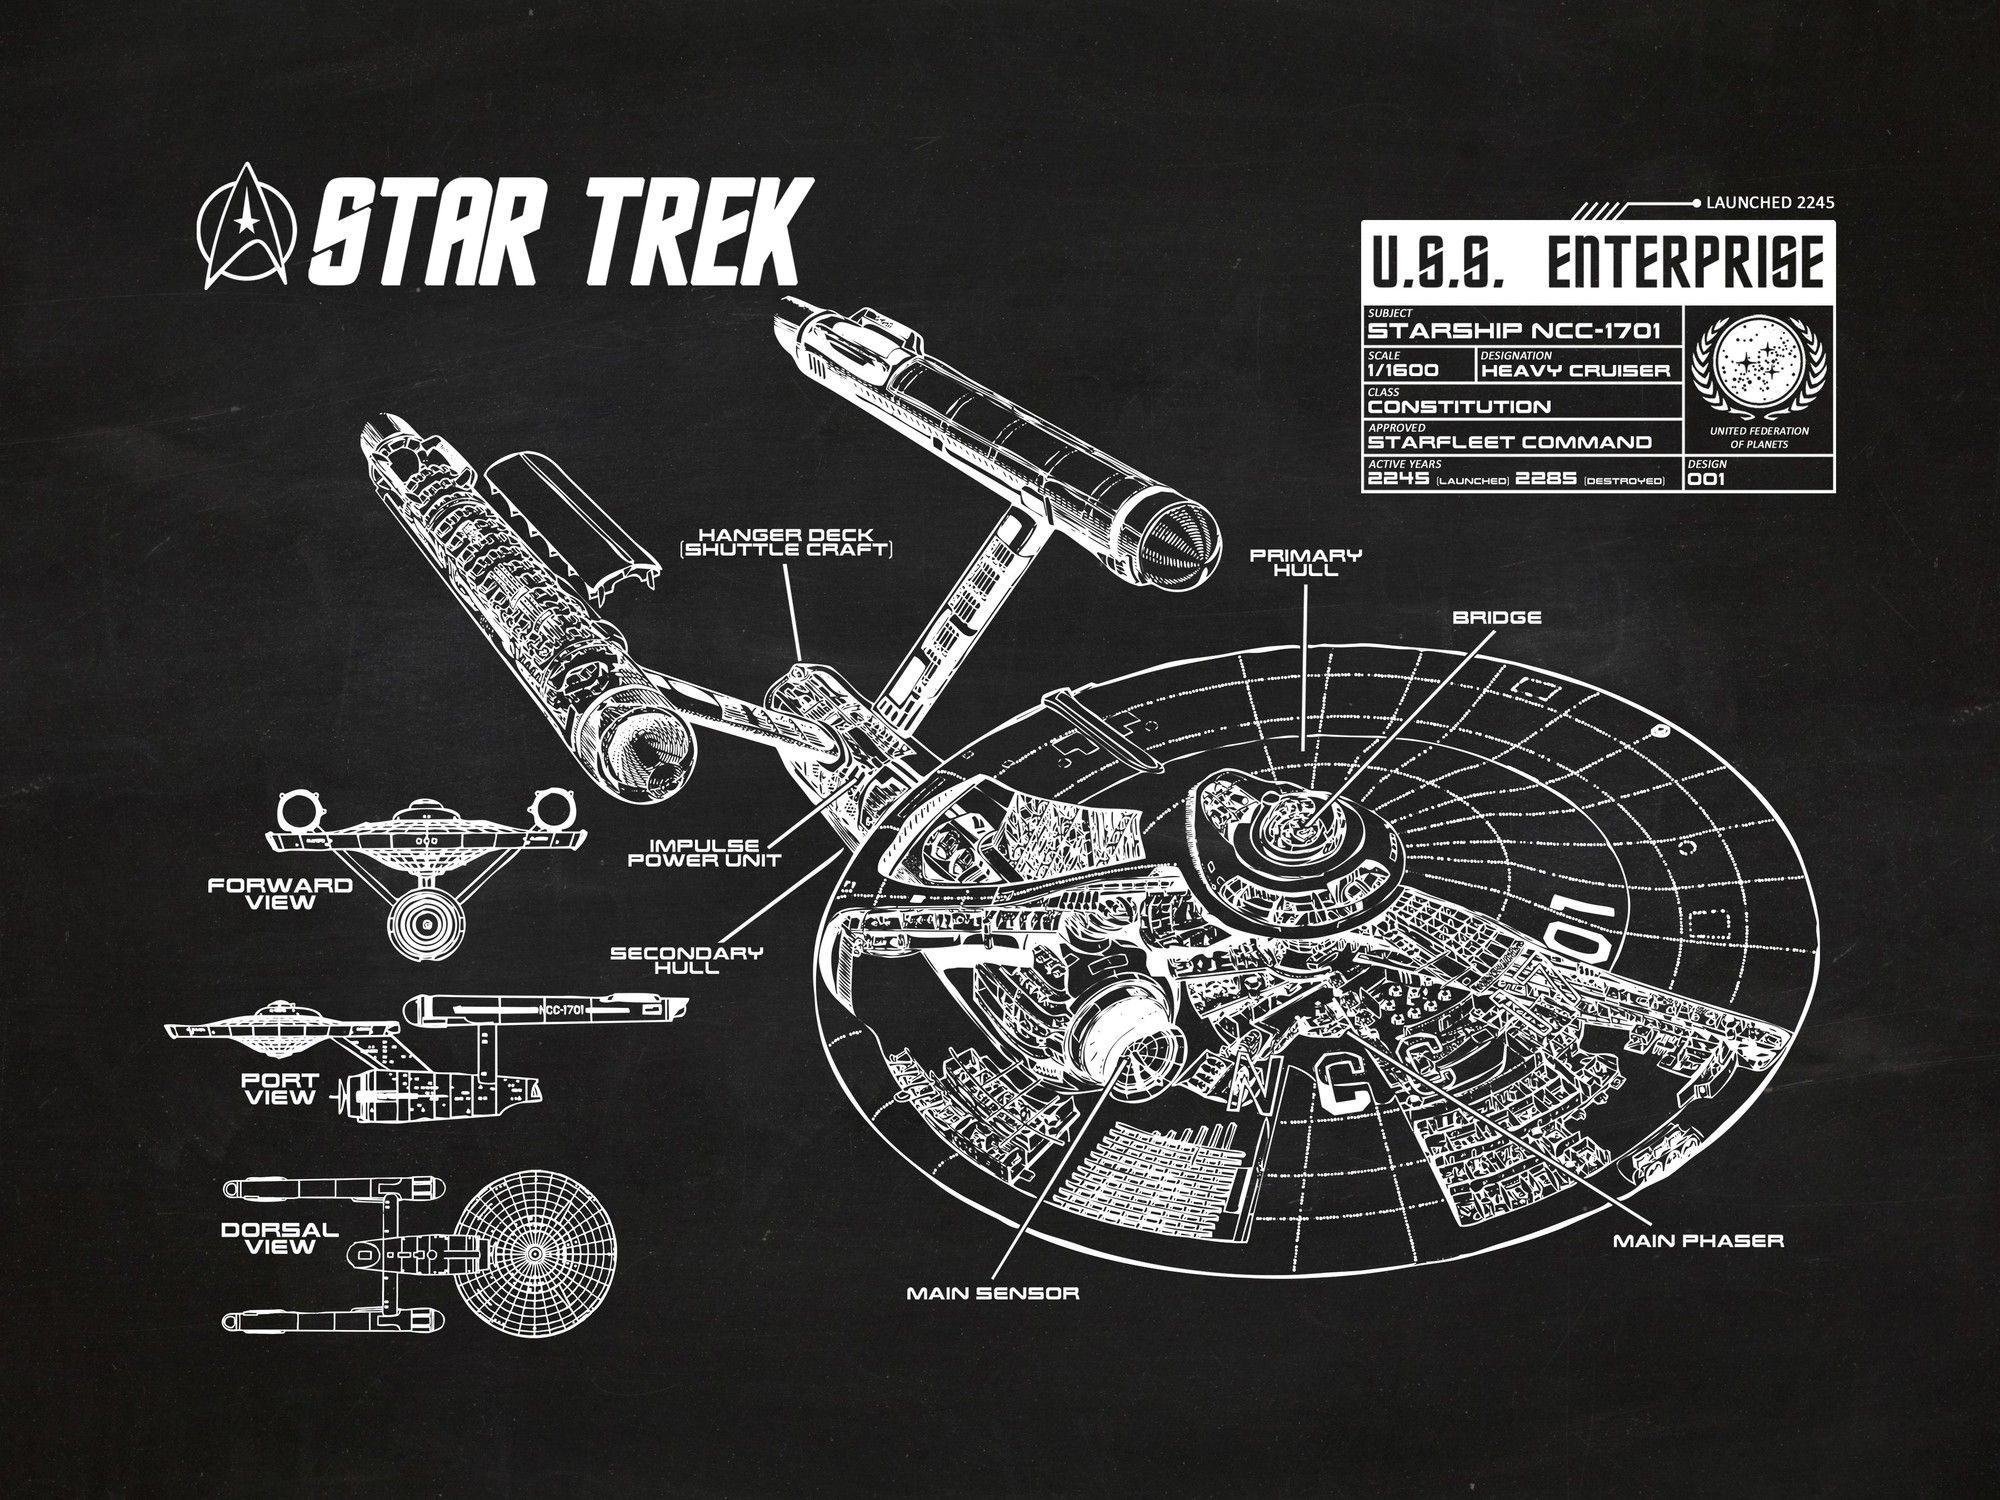 Star trek blueprint graphic art poster in chalkboardwhite ink star trek blueprint graphic art poster in chalkboardwhite ink malvernweather Images